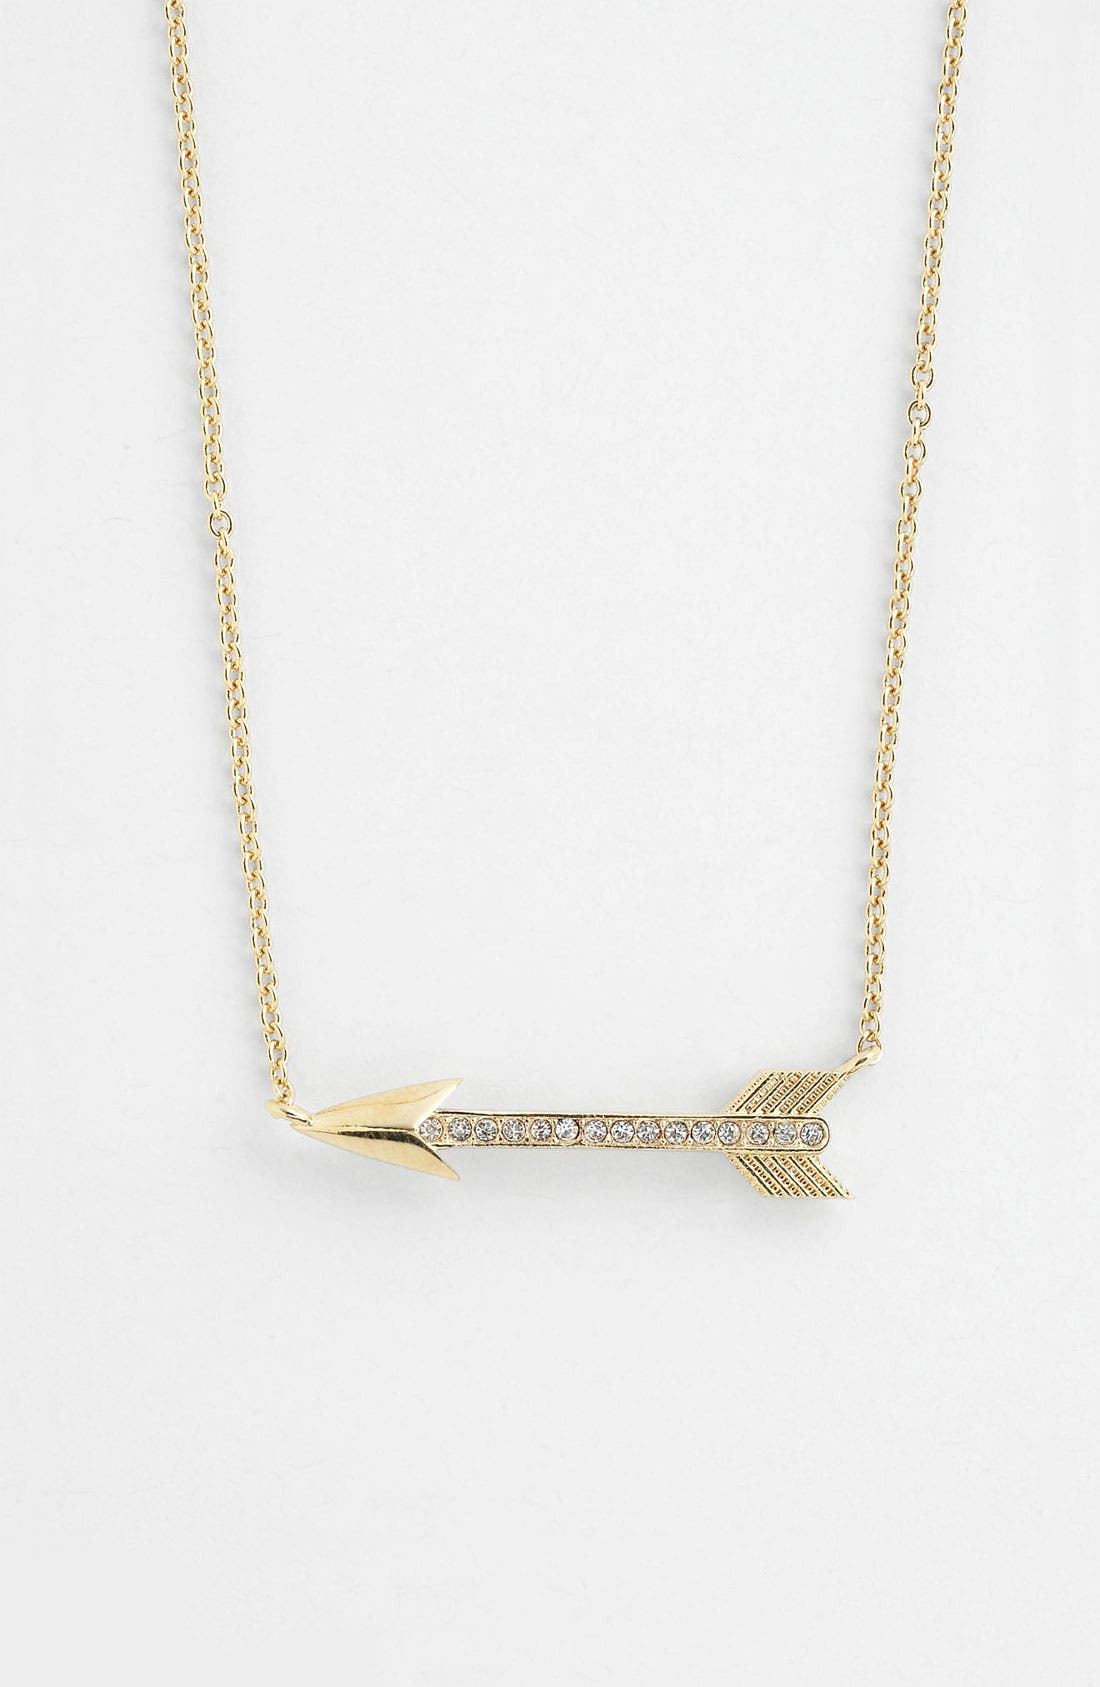 Alternate Image 1 Selected - Nadri Boxed Arrow Pendant Necklace (Nordstrom Exclusive)